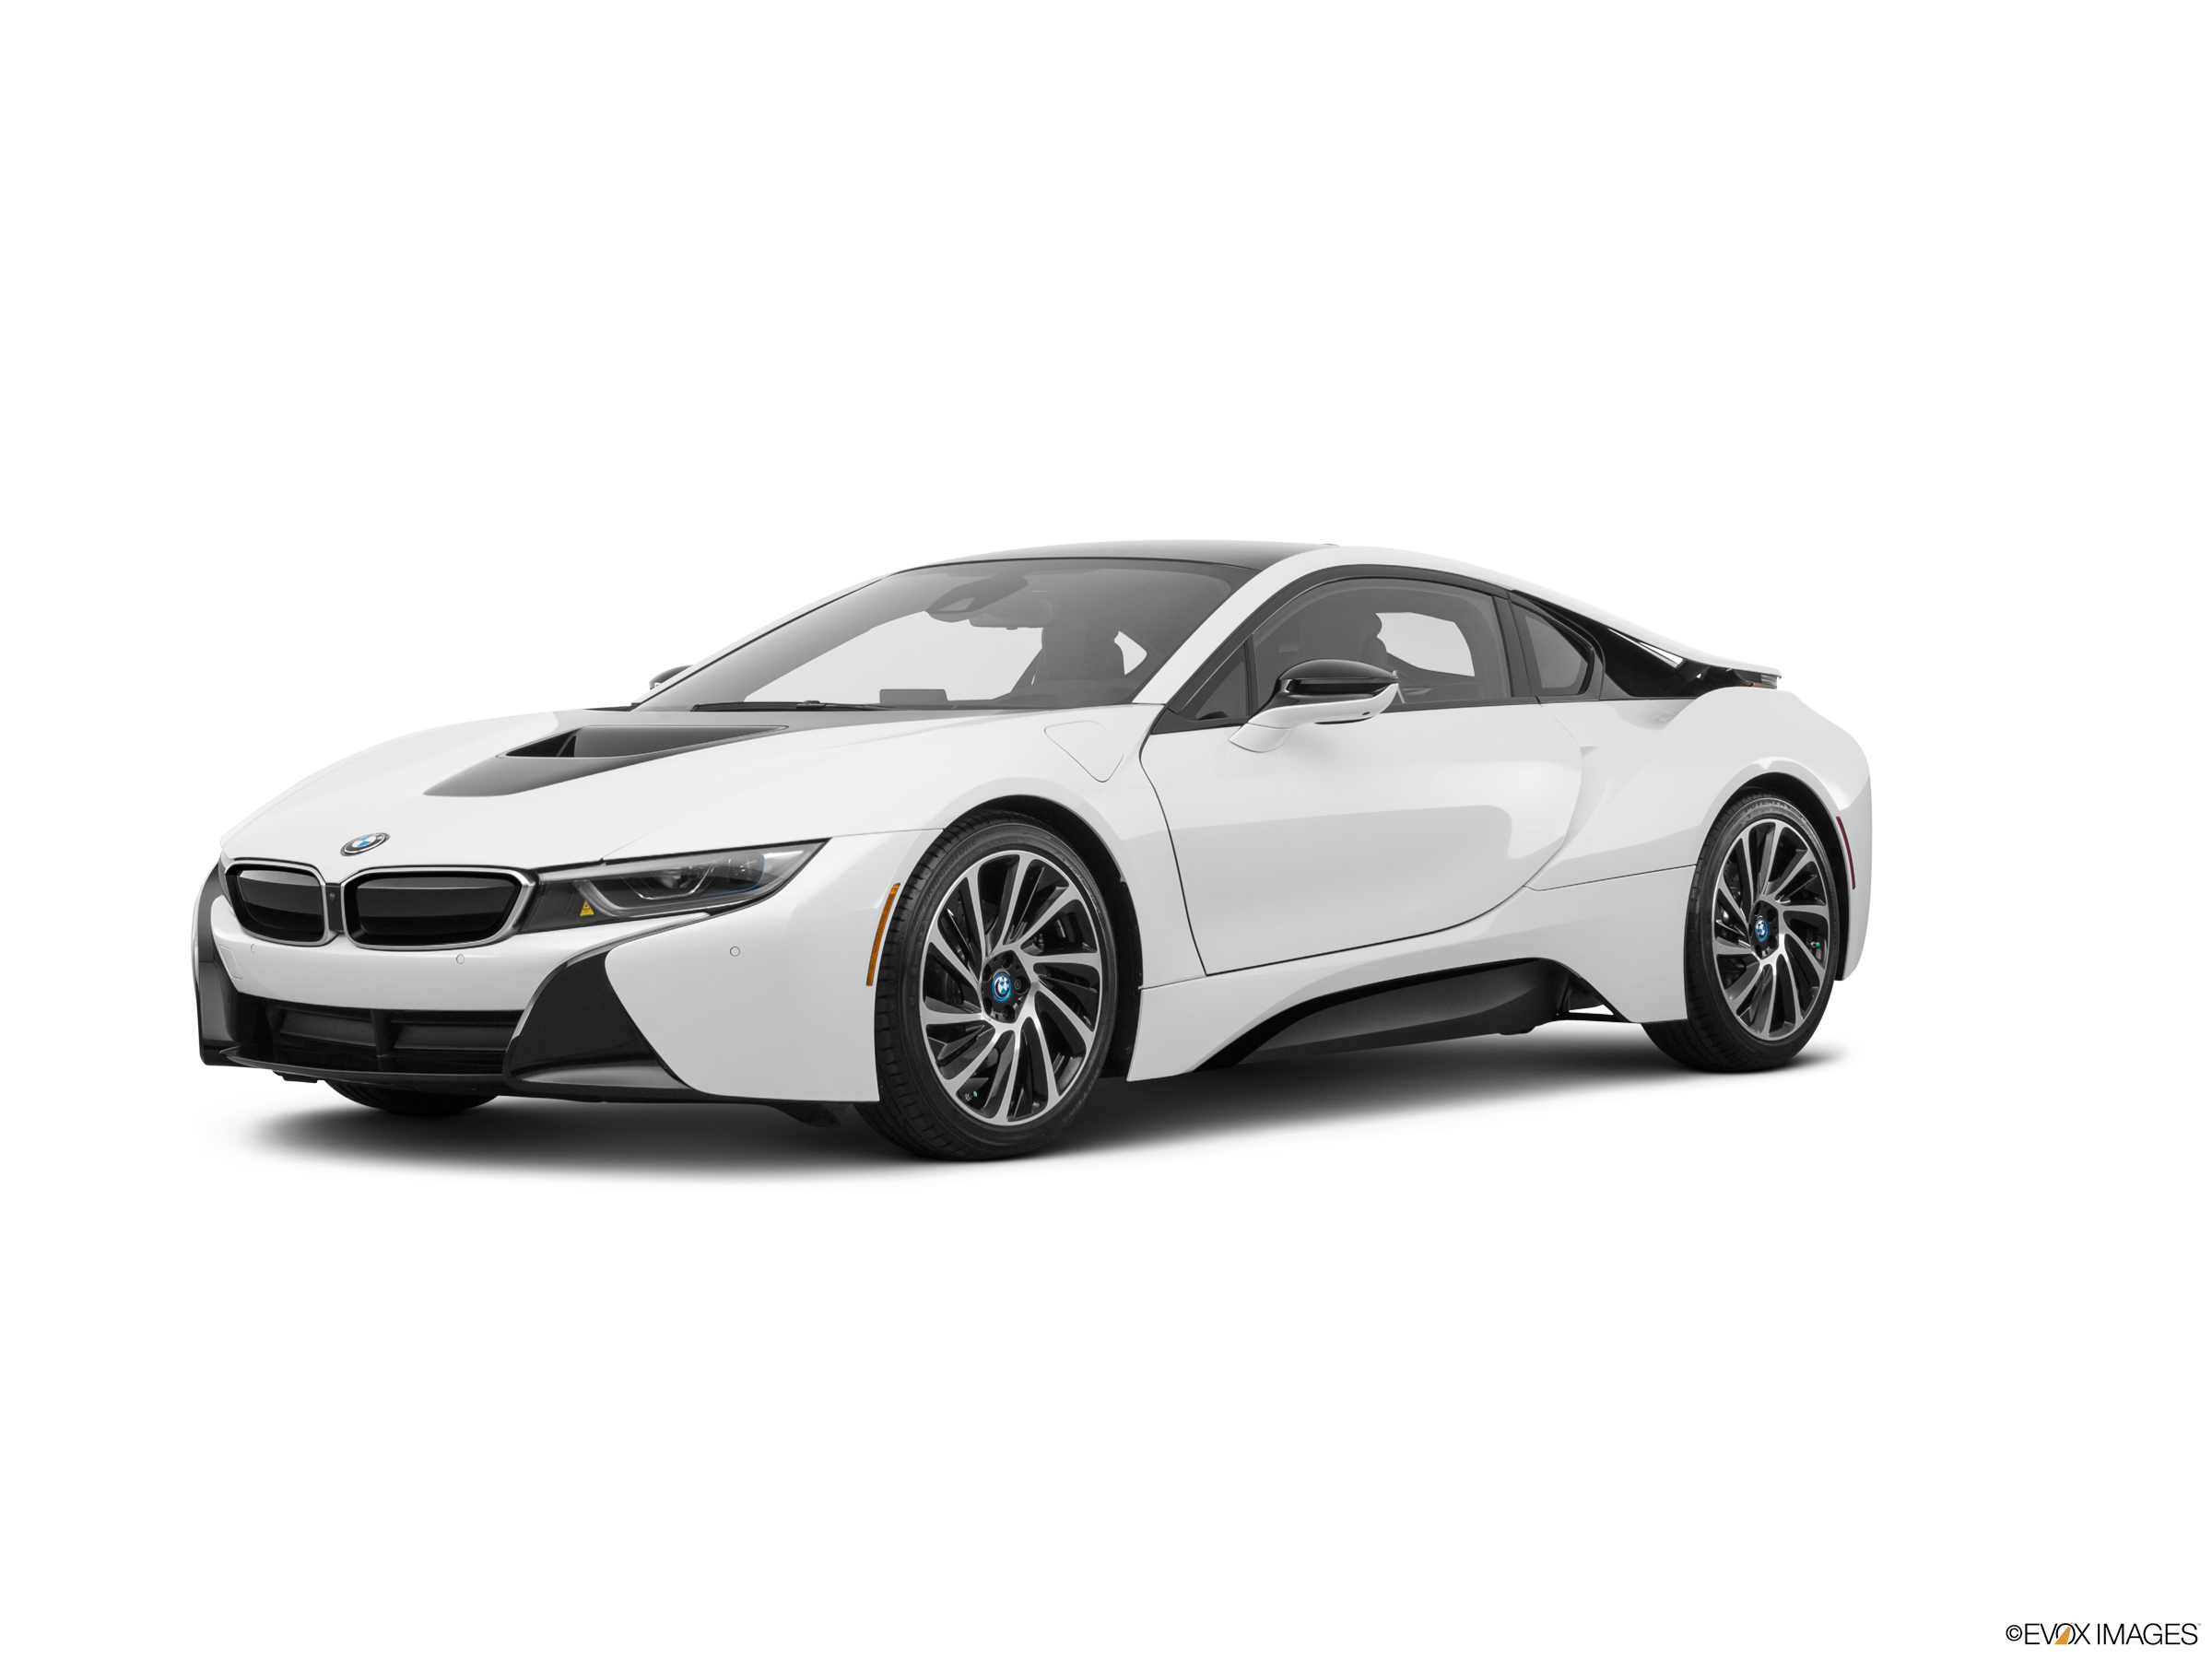 Highest Horsepower Electric Cars of 2017 - 2017 BMW i8